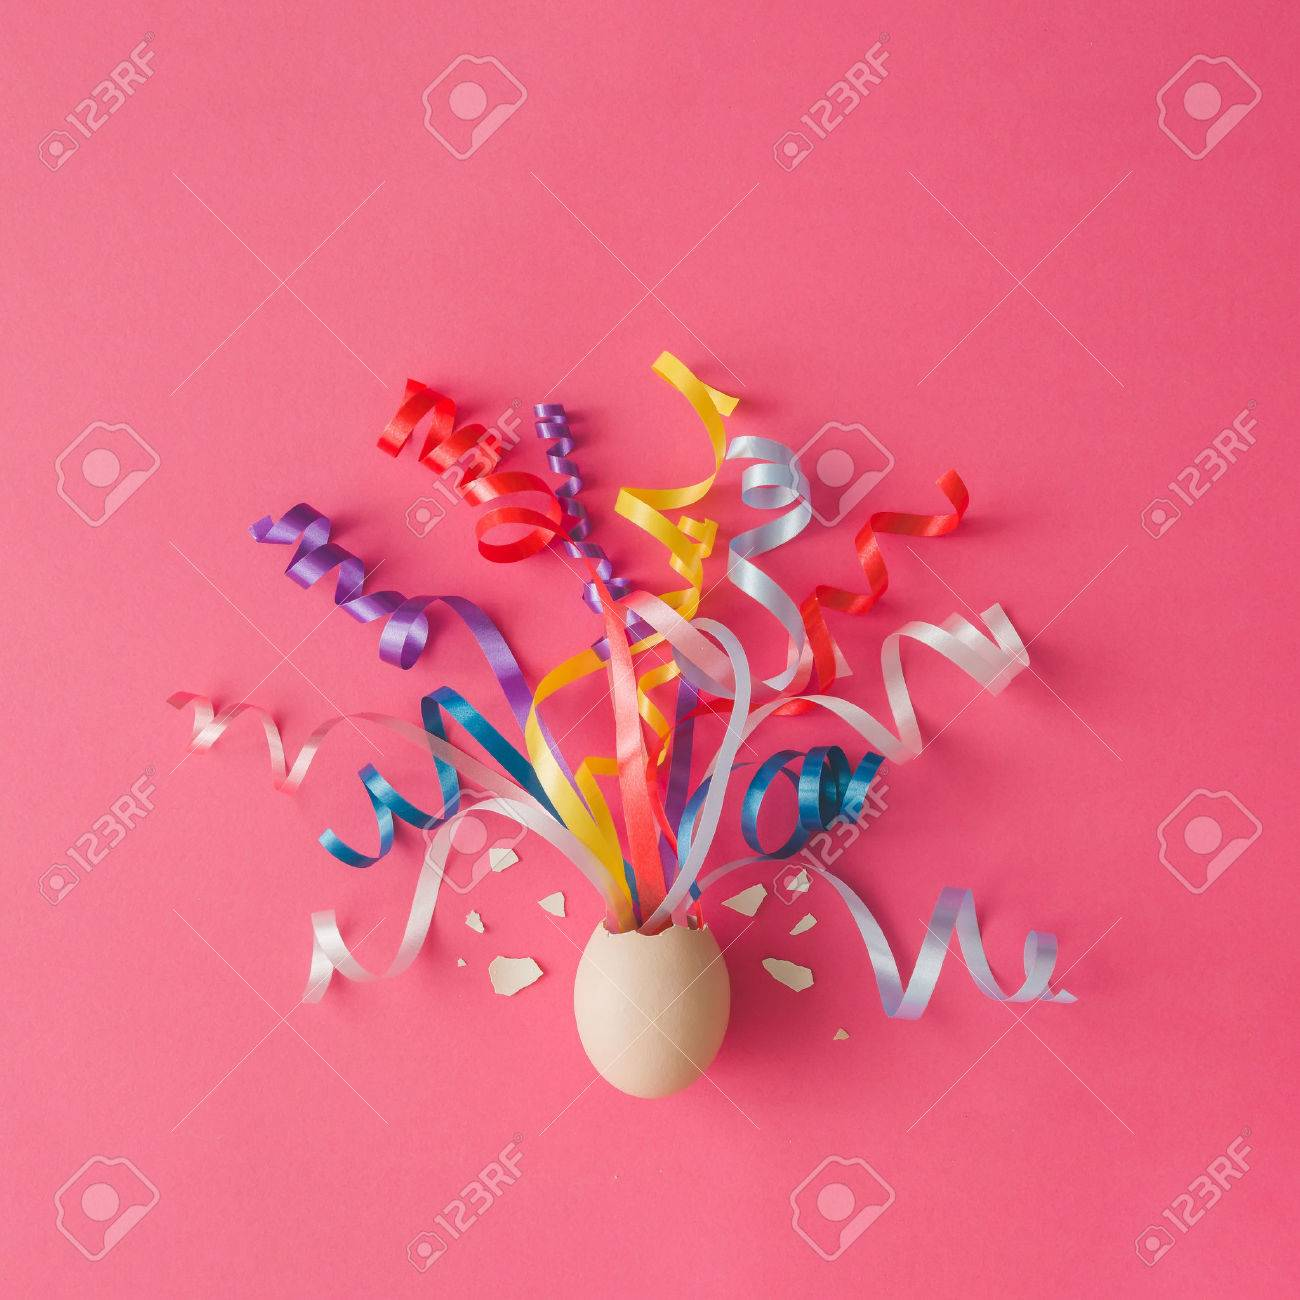 Egg with party streamers on pink background. Easter concept. Flat lay. - 74236934